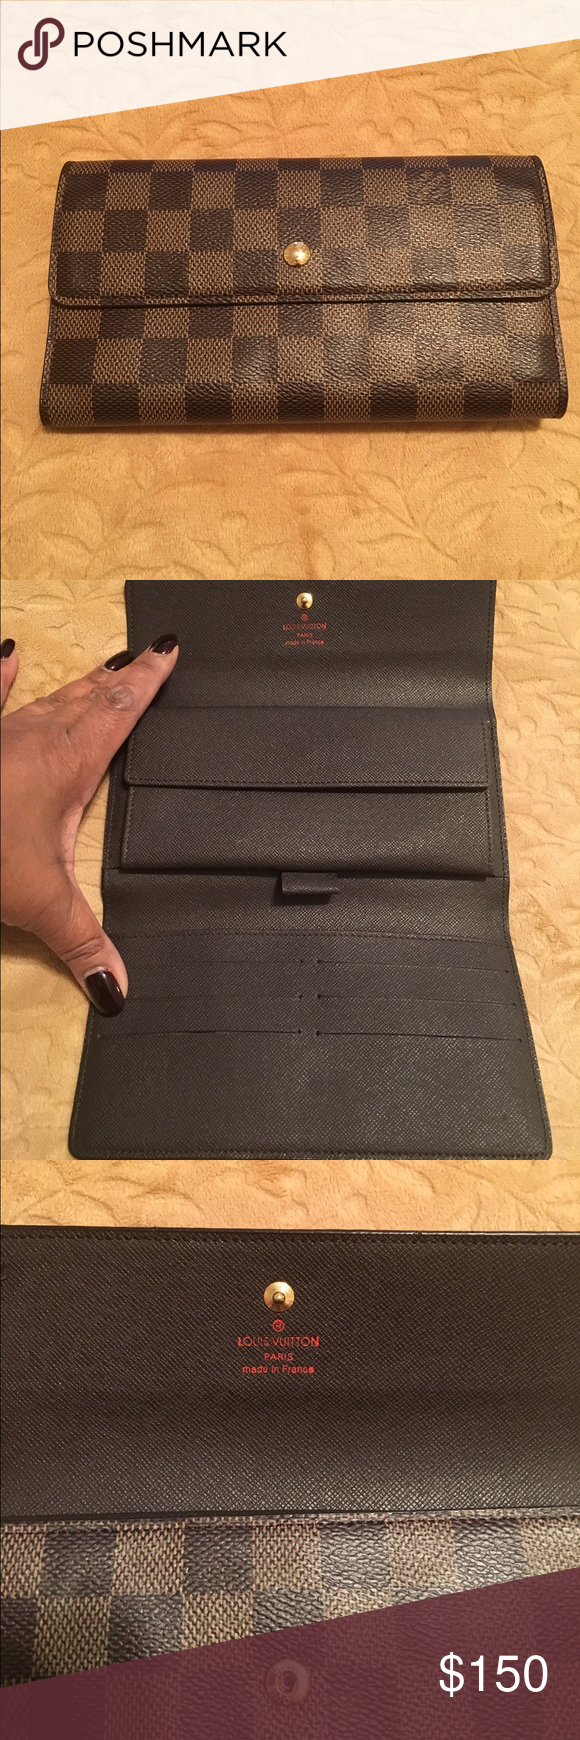 LV wallet Never used brown wallet.  In excellent condition.  No scratches.  Price reflects authenticity. Louis Vuitton Bags Wallets